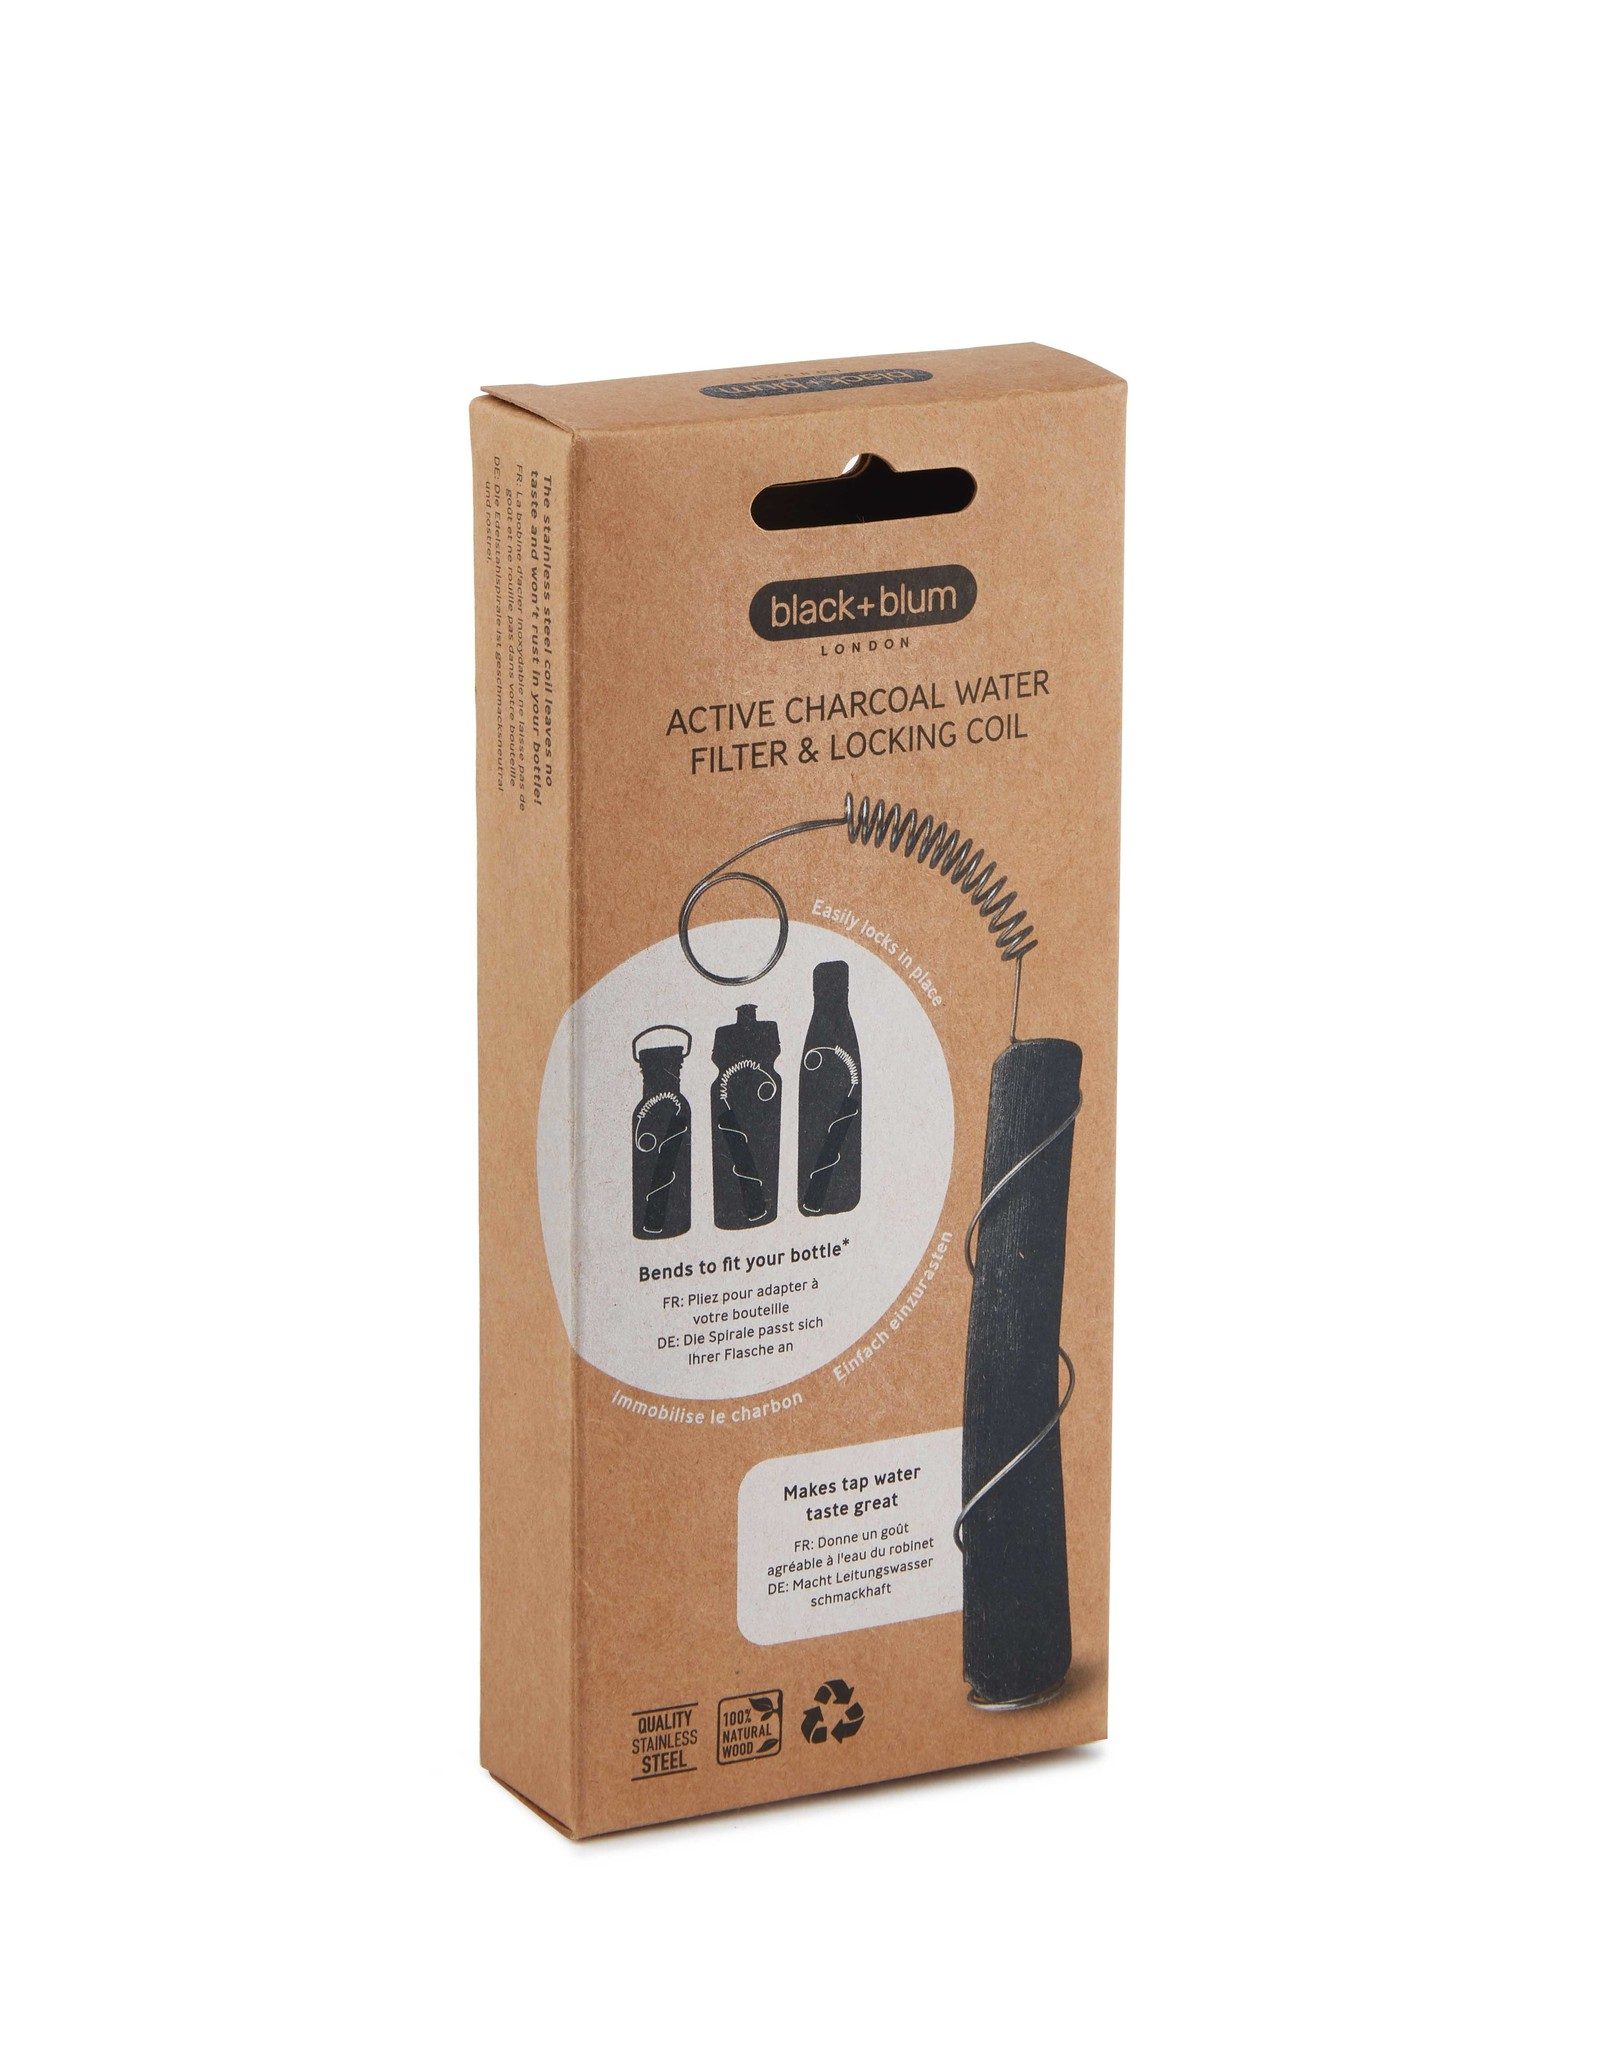 Charcoal waterfilter